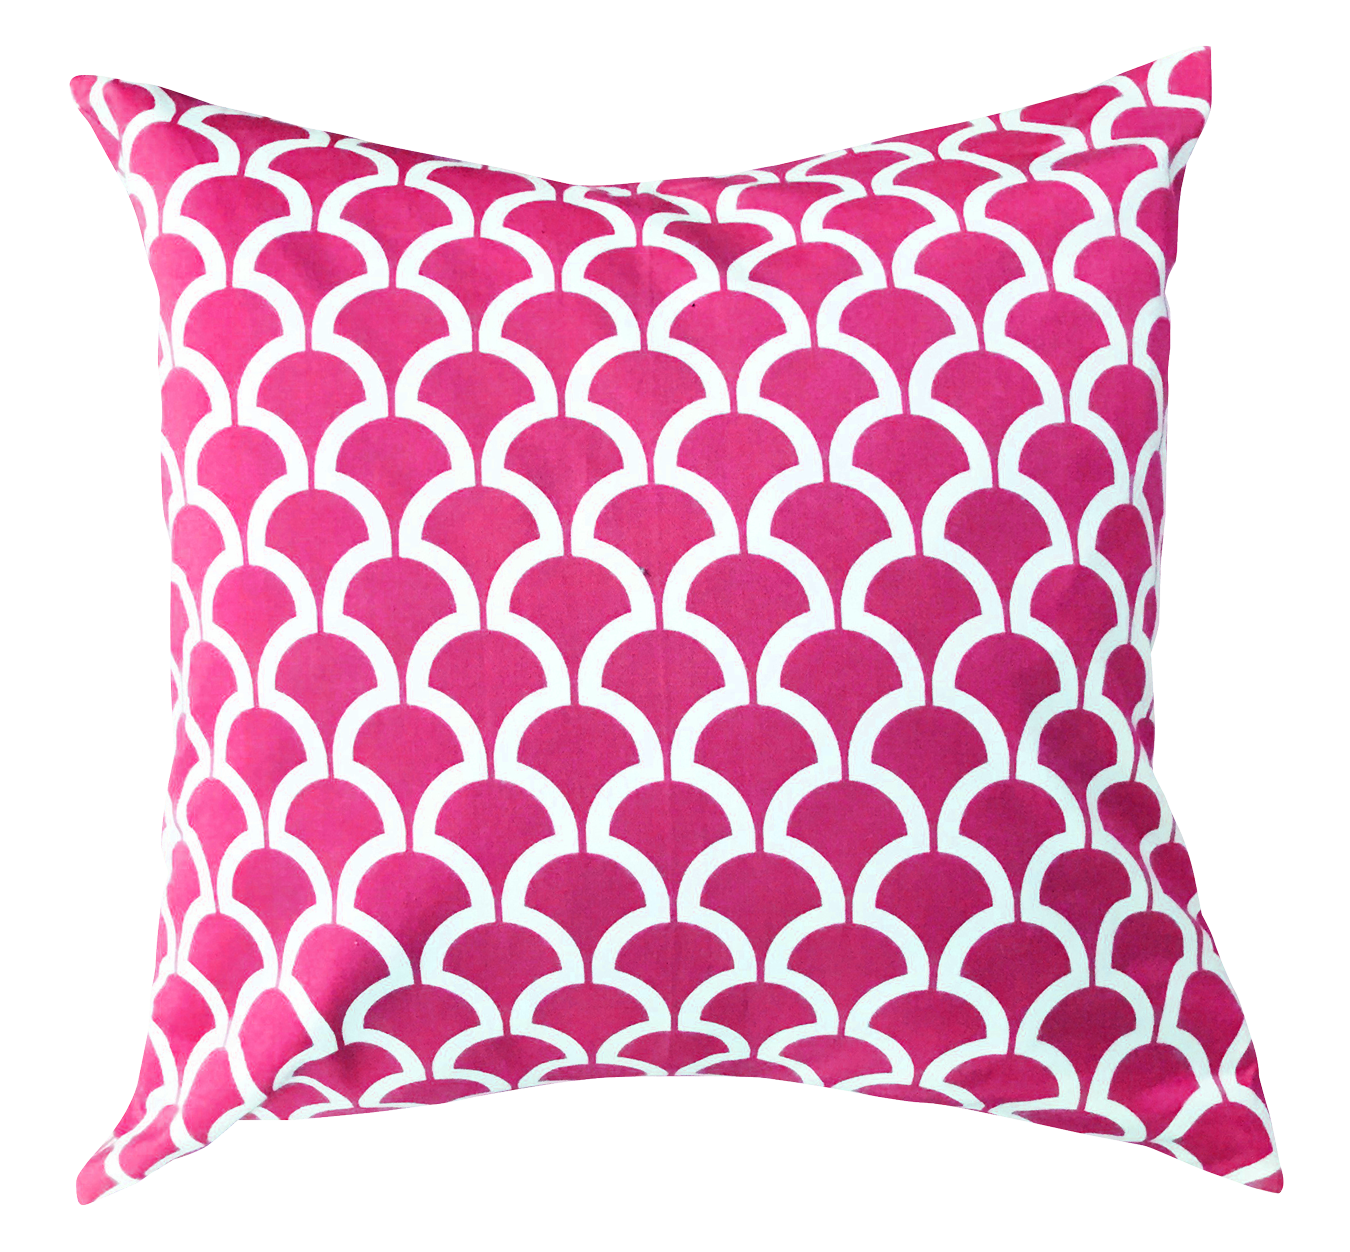 Png transparent image best. Pillow clipart pink pillow